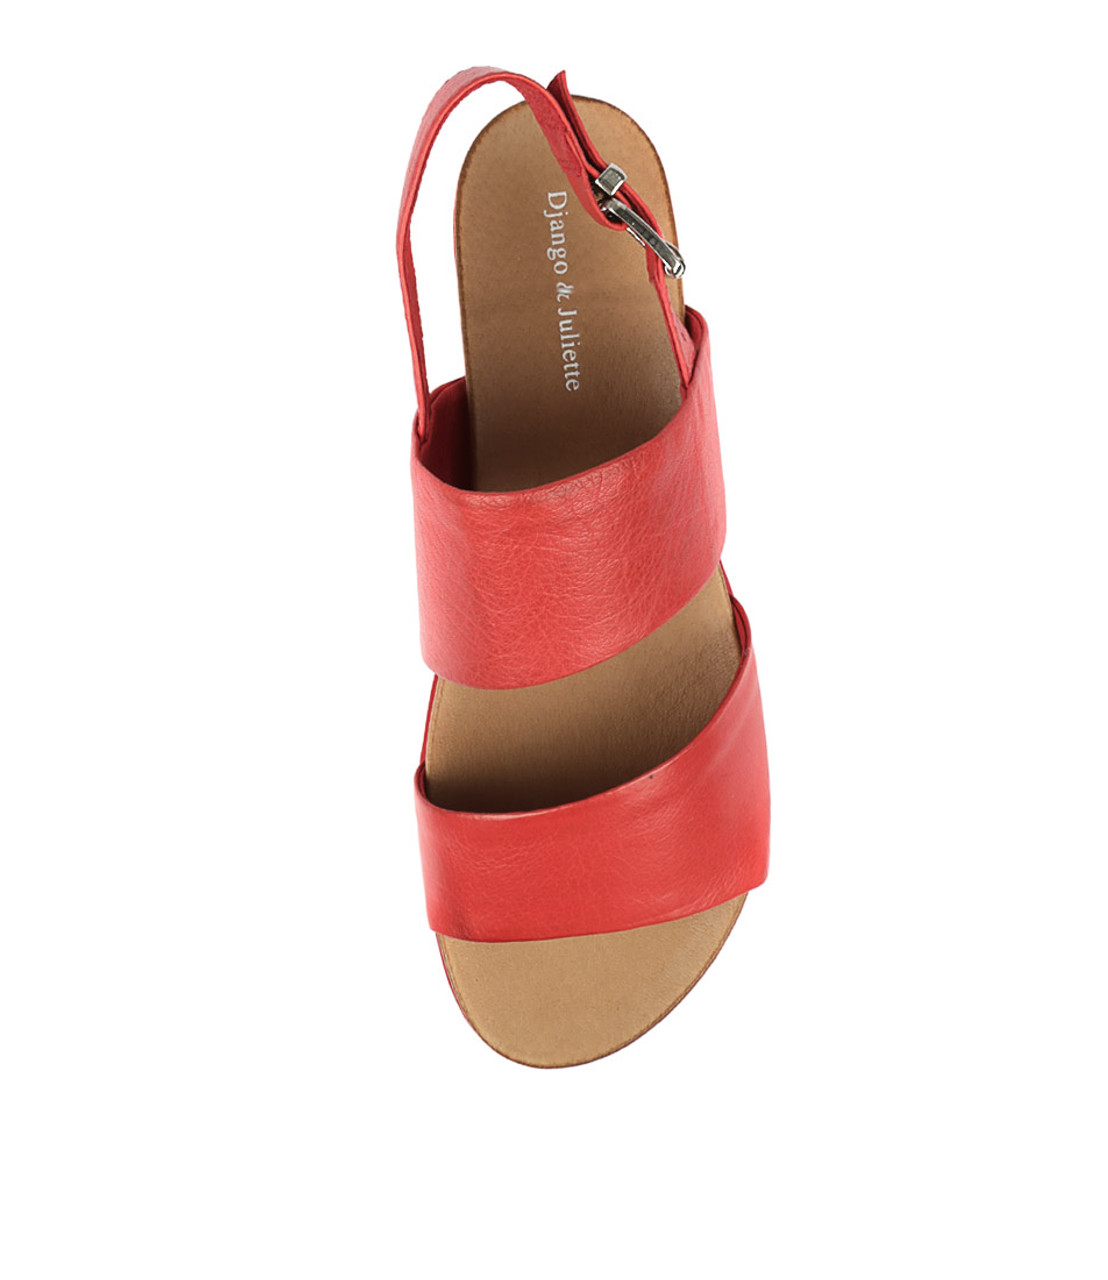 CARINA Sandals Red Leather Django and Juliette